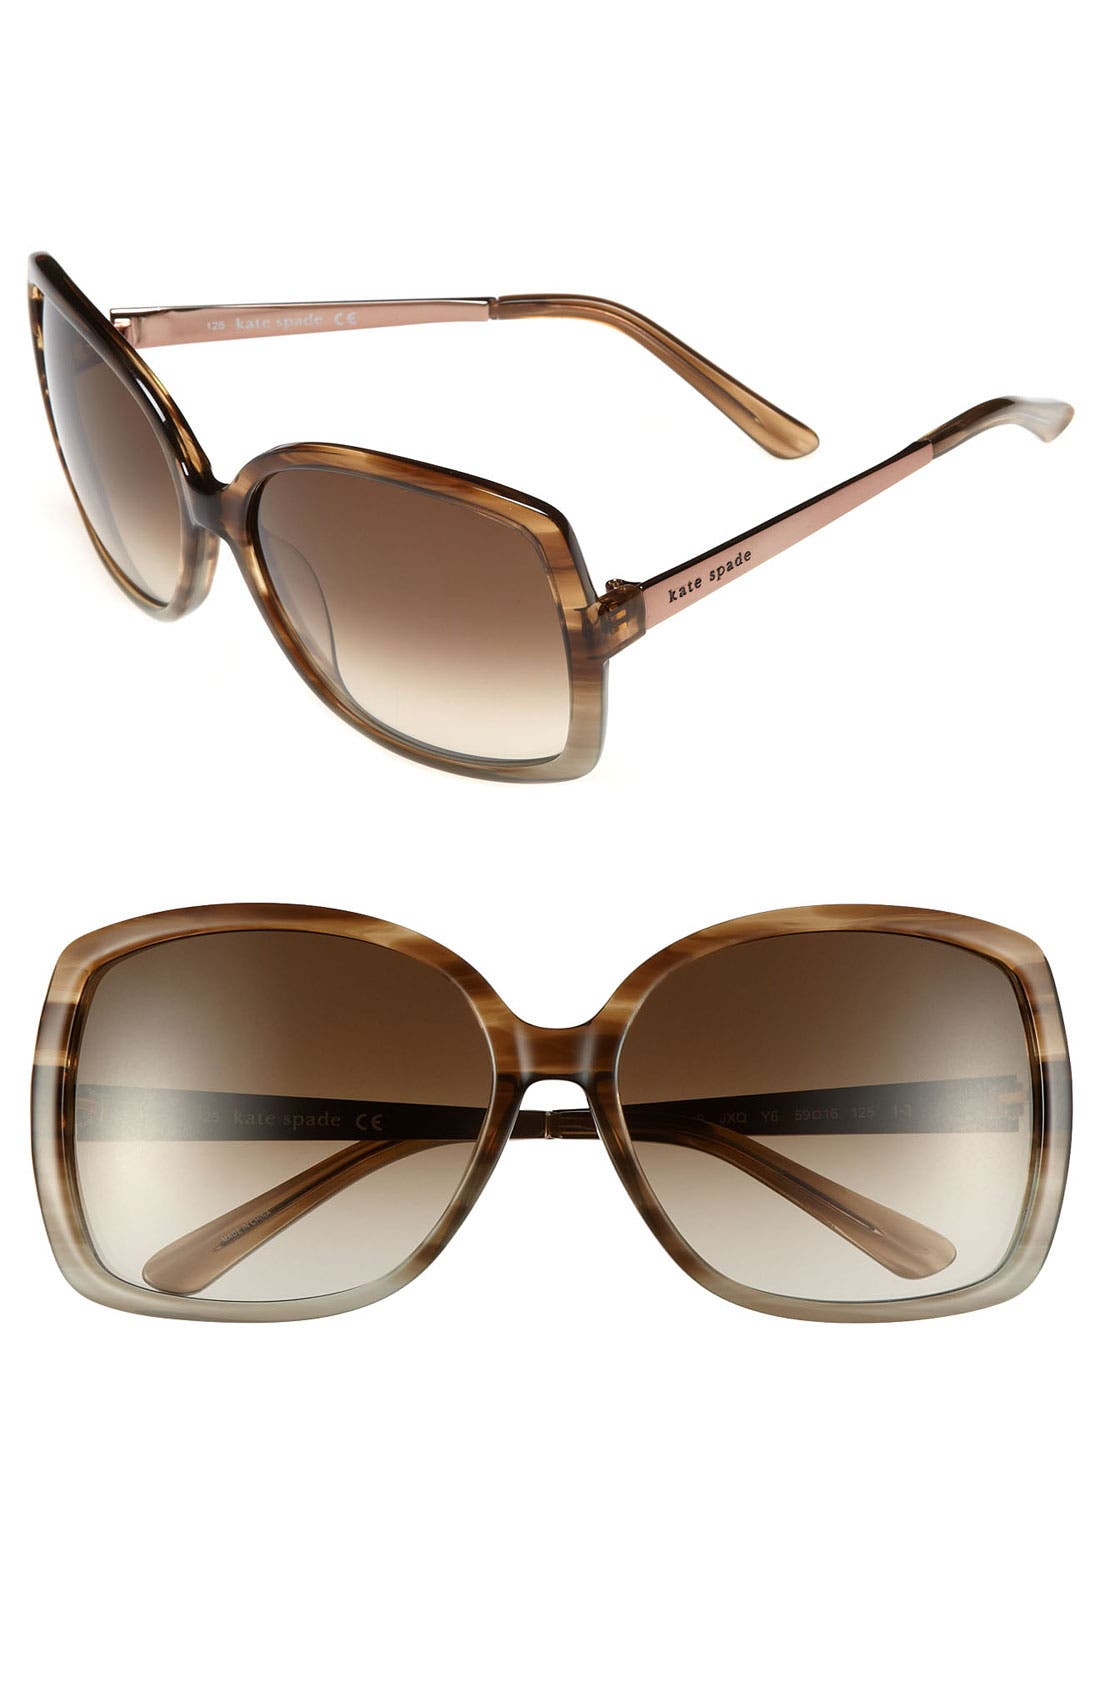 Main Image - kate spade new york 'darryl' 59mm sunglasses